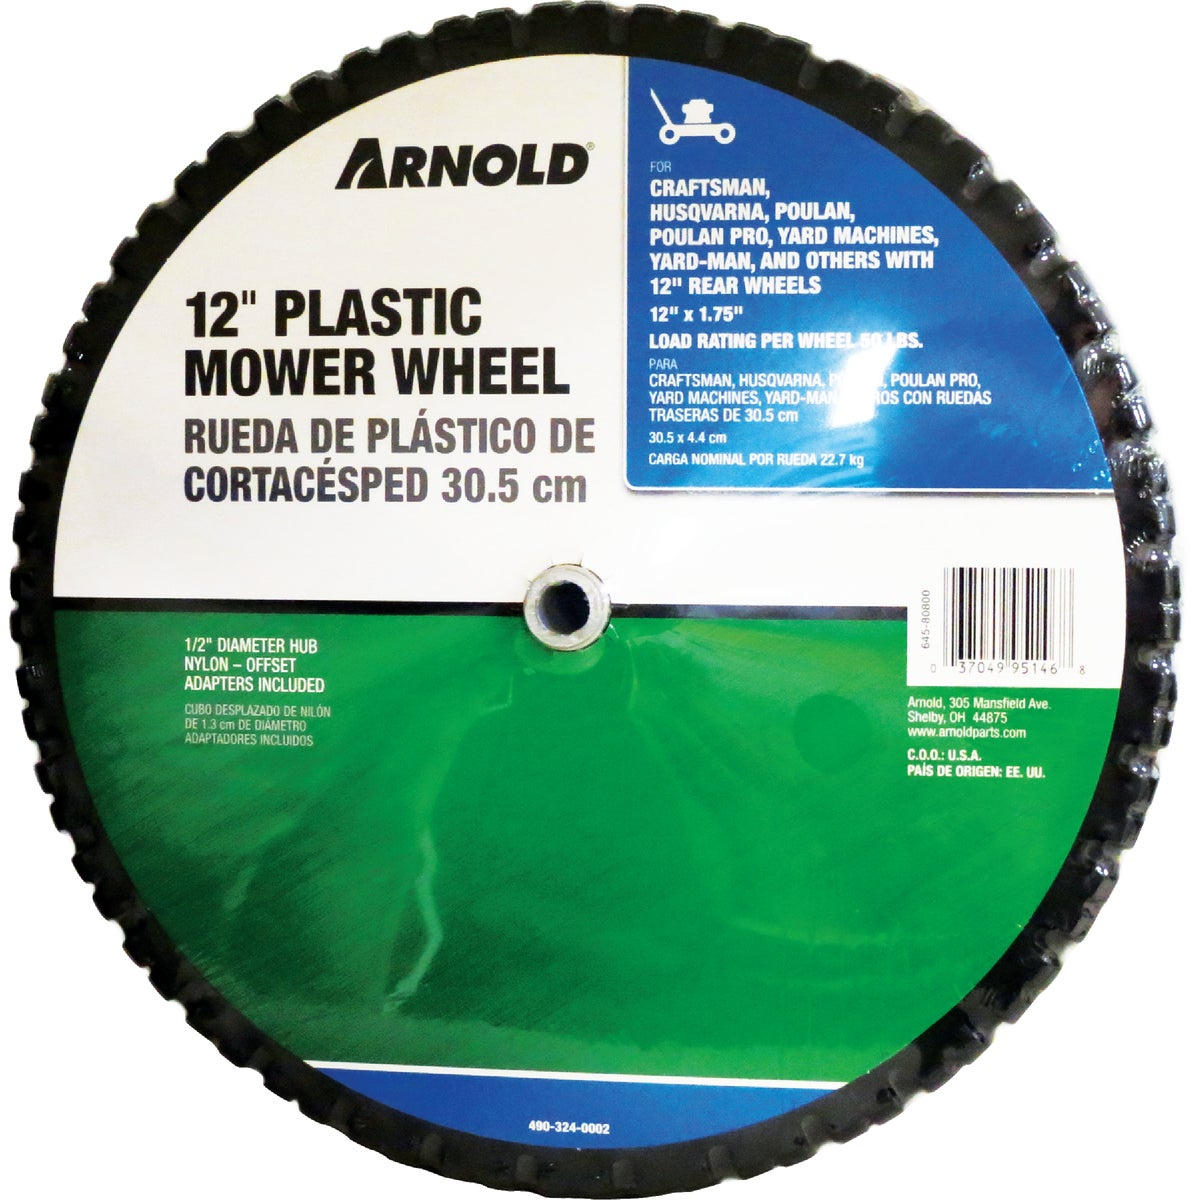 "12"" PLASTIC MOWER WHEEL"